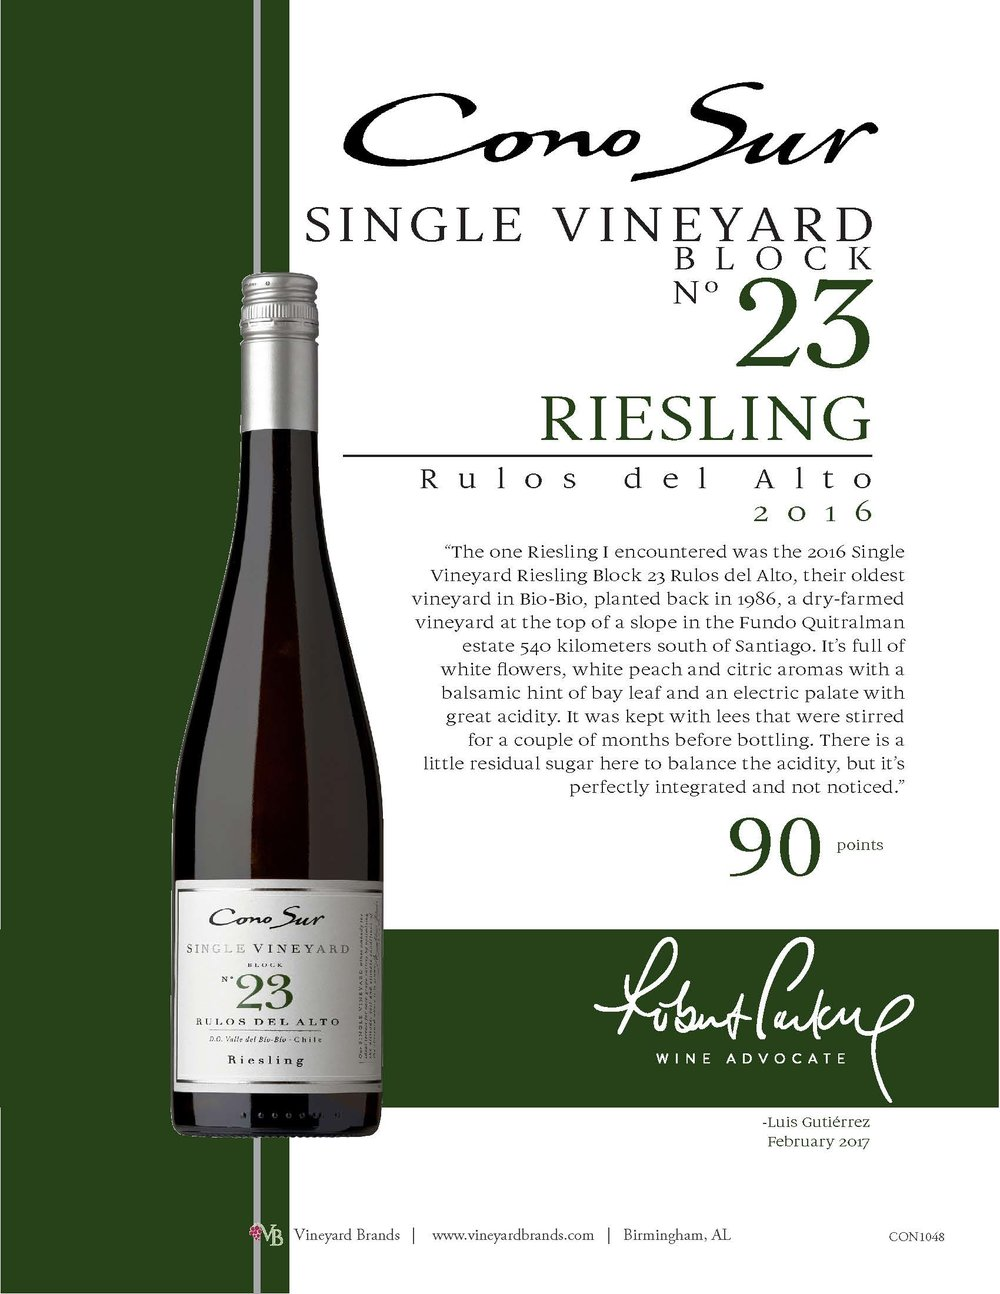 Cono Sur Single Vineyard Block No 23 Riesling.jpg